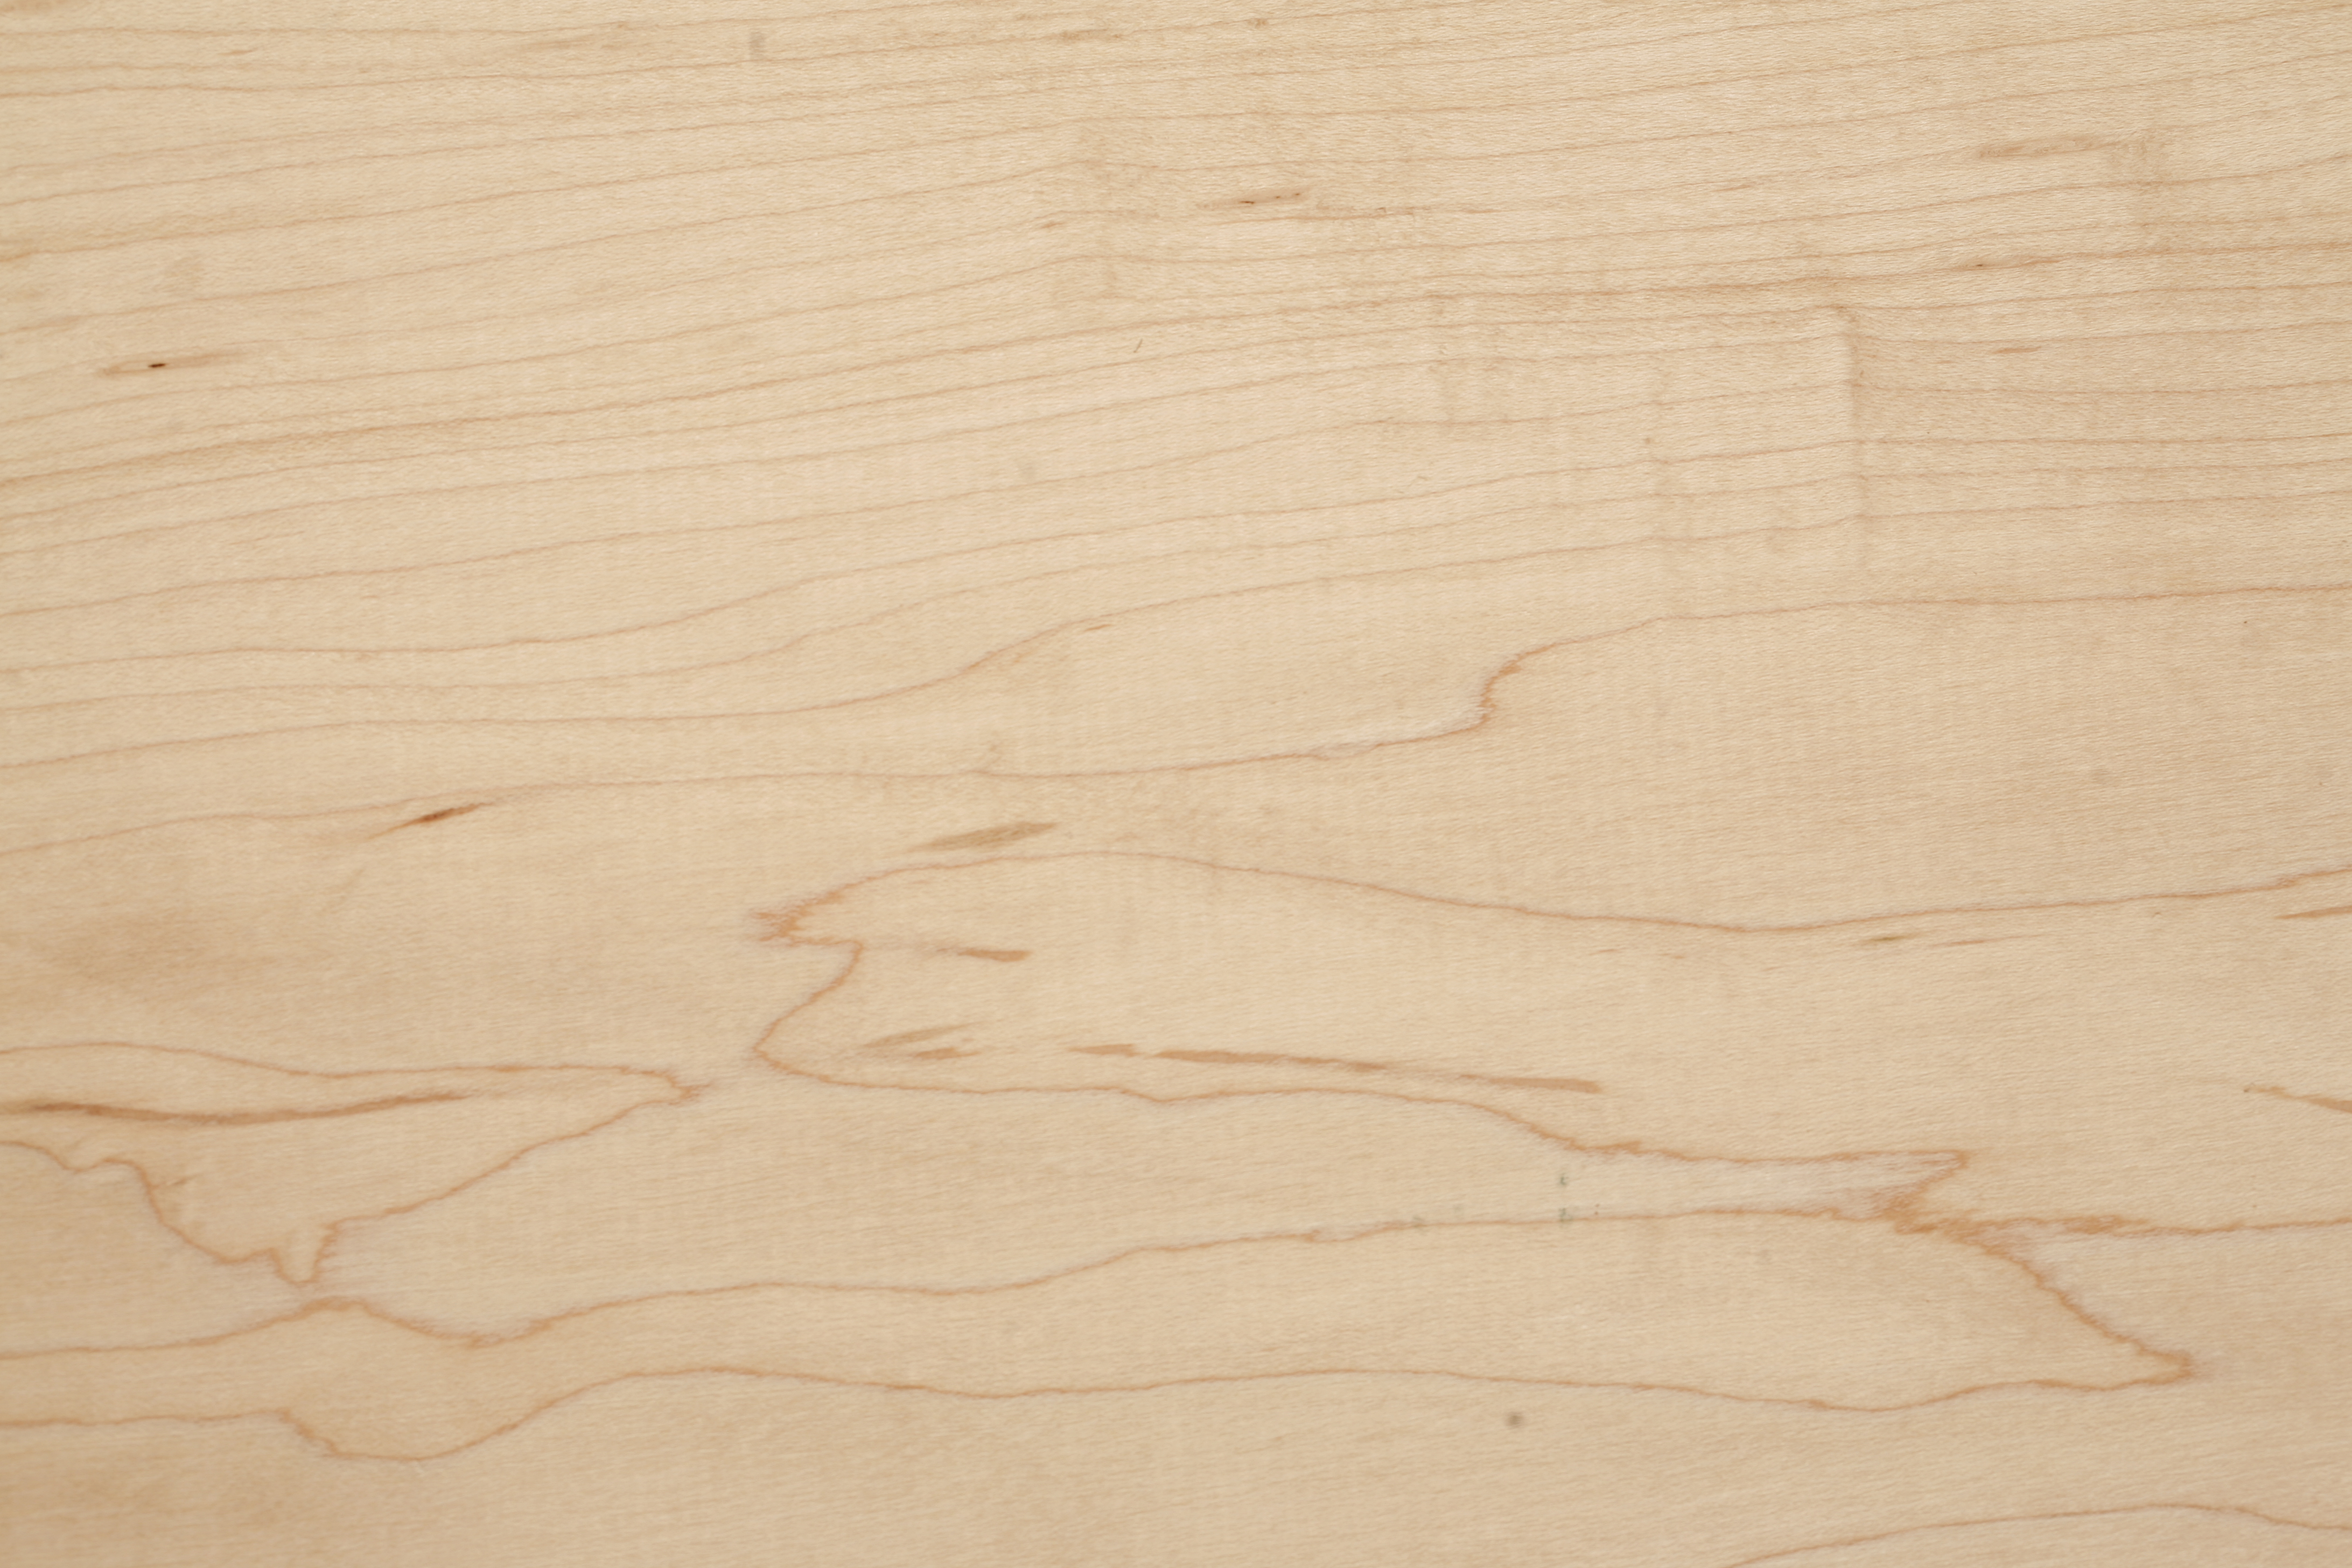 Preview Medium_large: birch plywood texture google search tangible ...